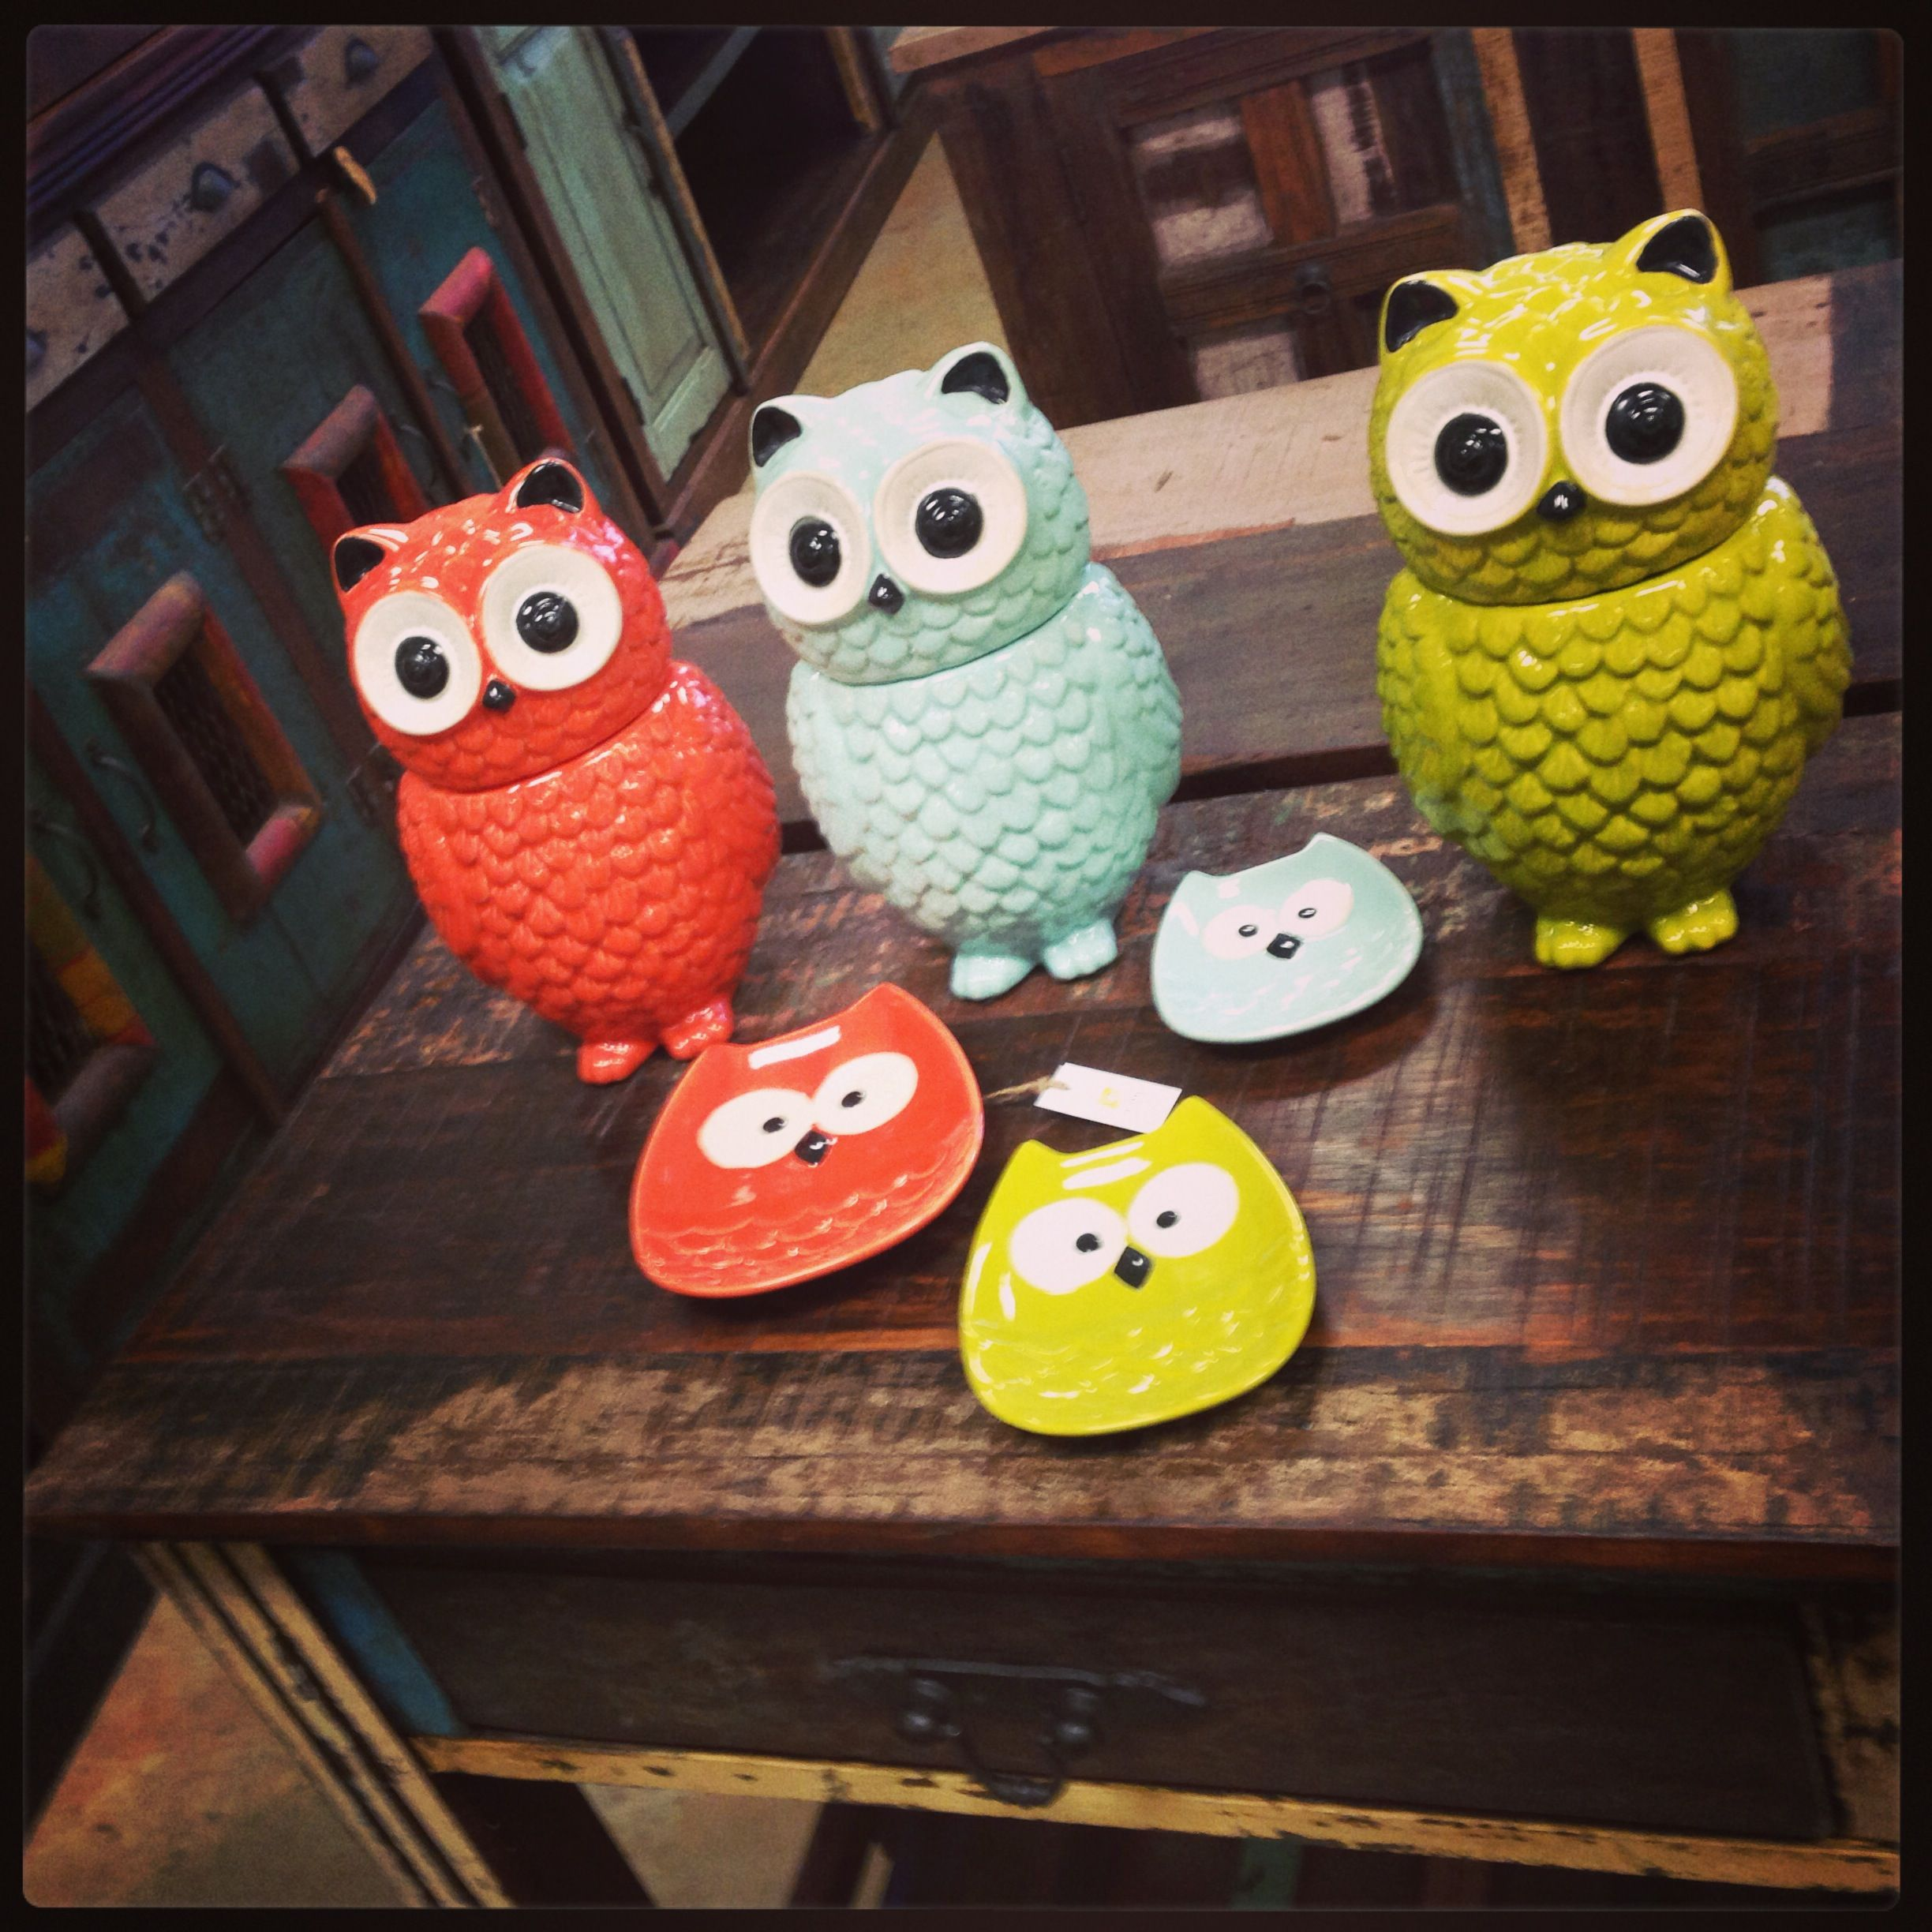 New Owl Canisters And Owl Plates In Stock So Cute Perfect For Spring Colorful Playful Adorable Fayetteville Ar Owl Kitchen Owl Plate Owl Theme